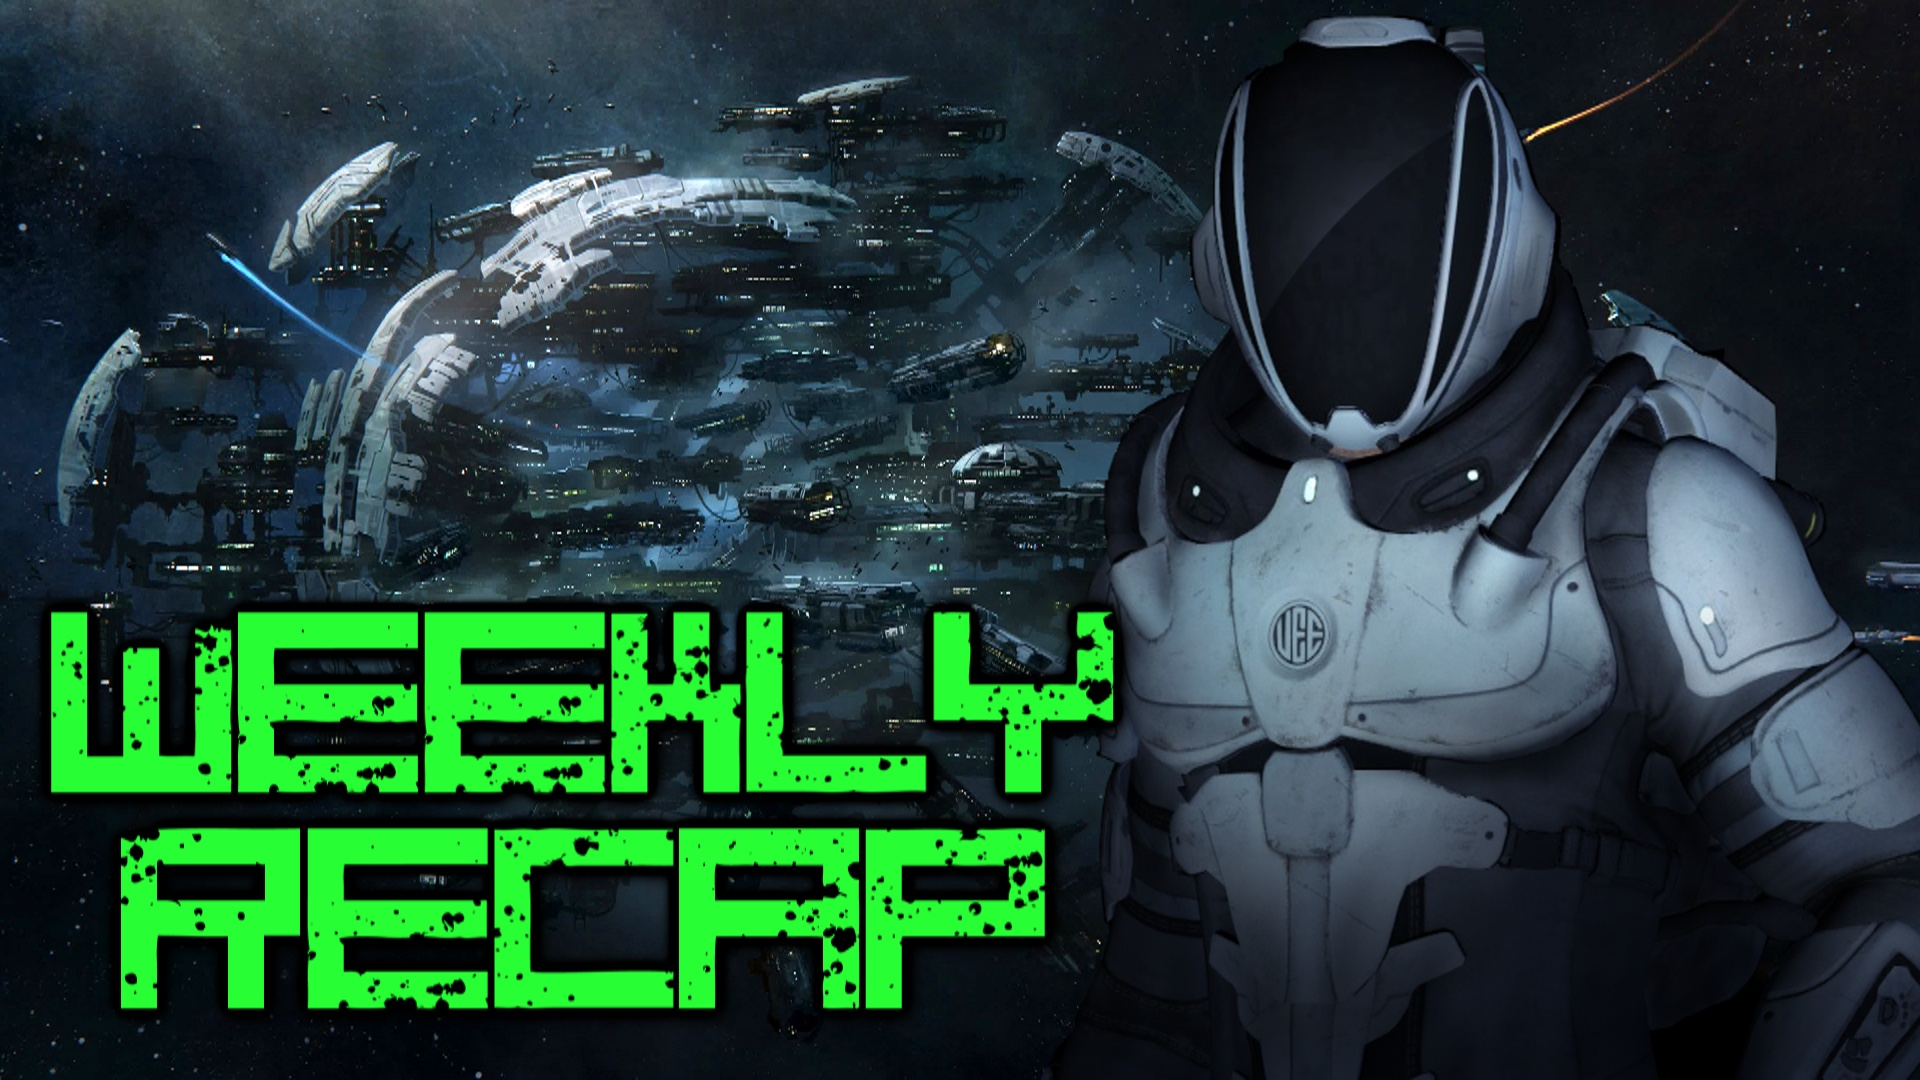 MMOHuts Weekly Recap #248 July 13th - Trove, RaiderZ, Star Citizen & More!